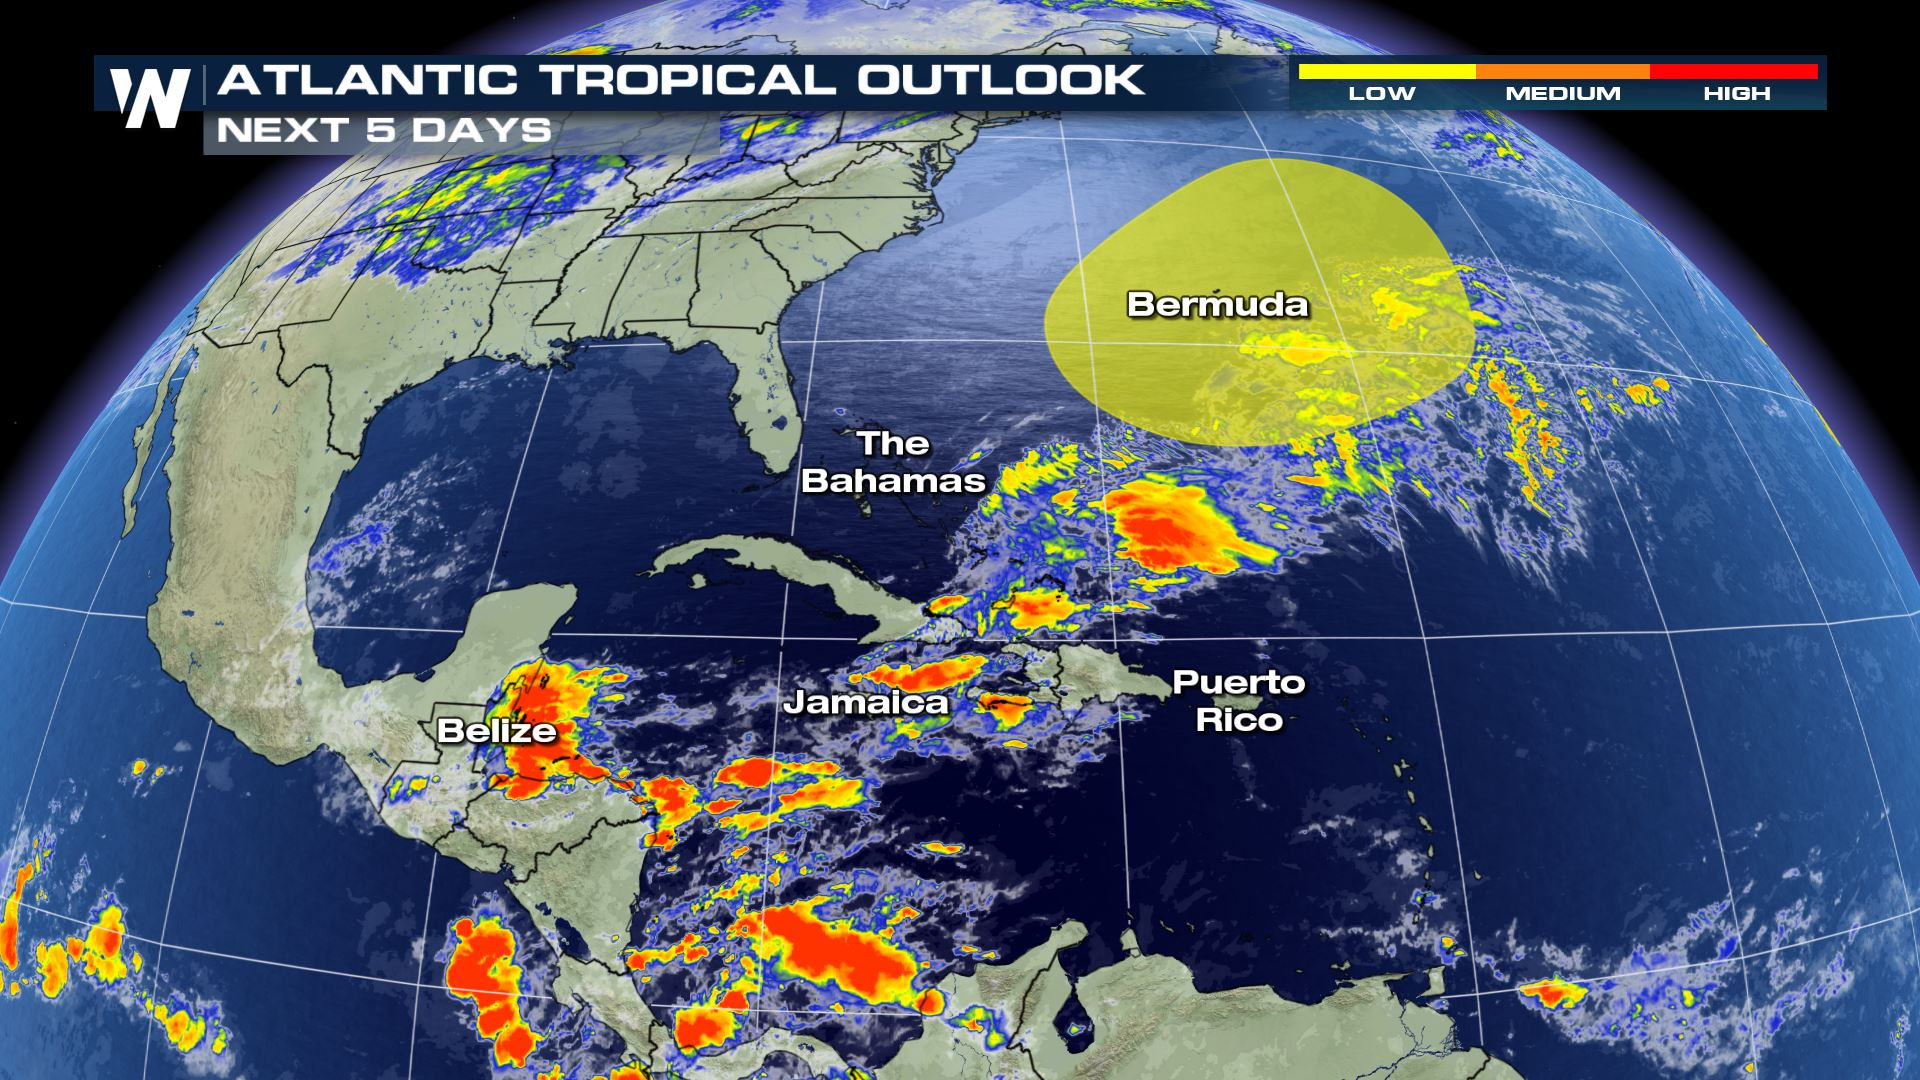 Additional Tropical Development Possible in the Atlantic